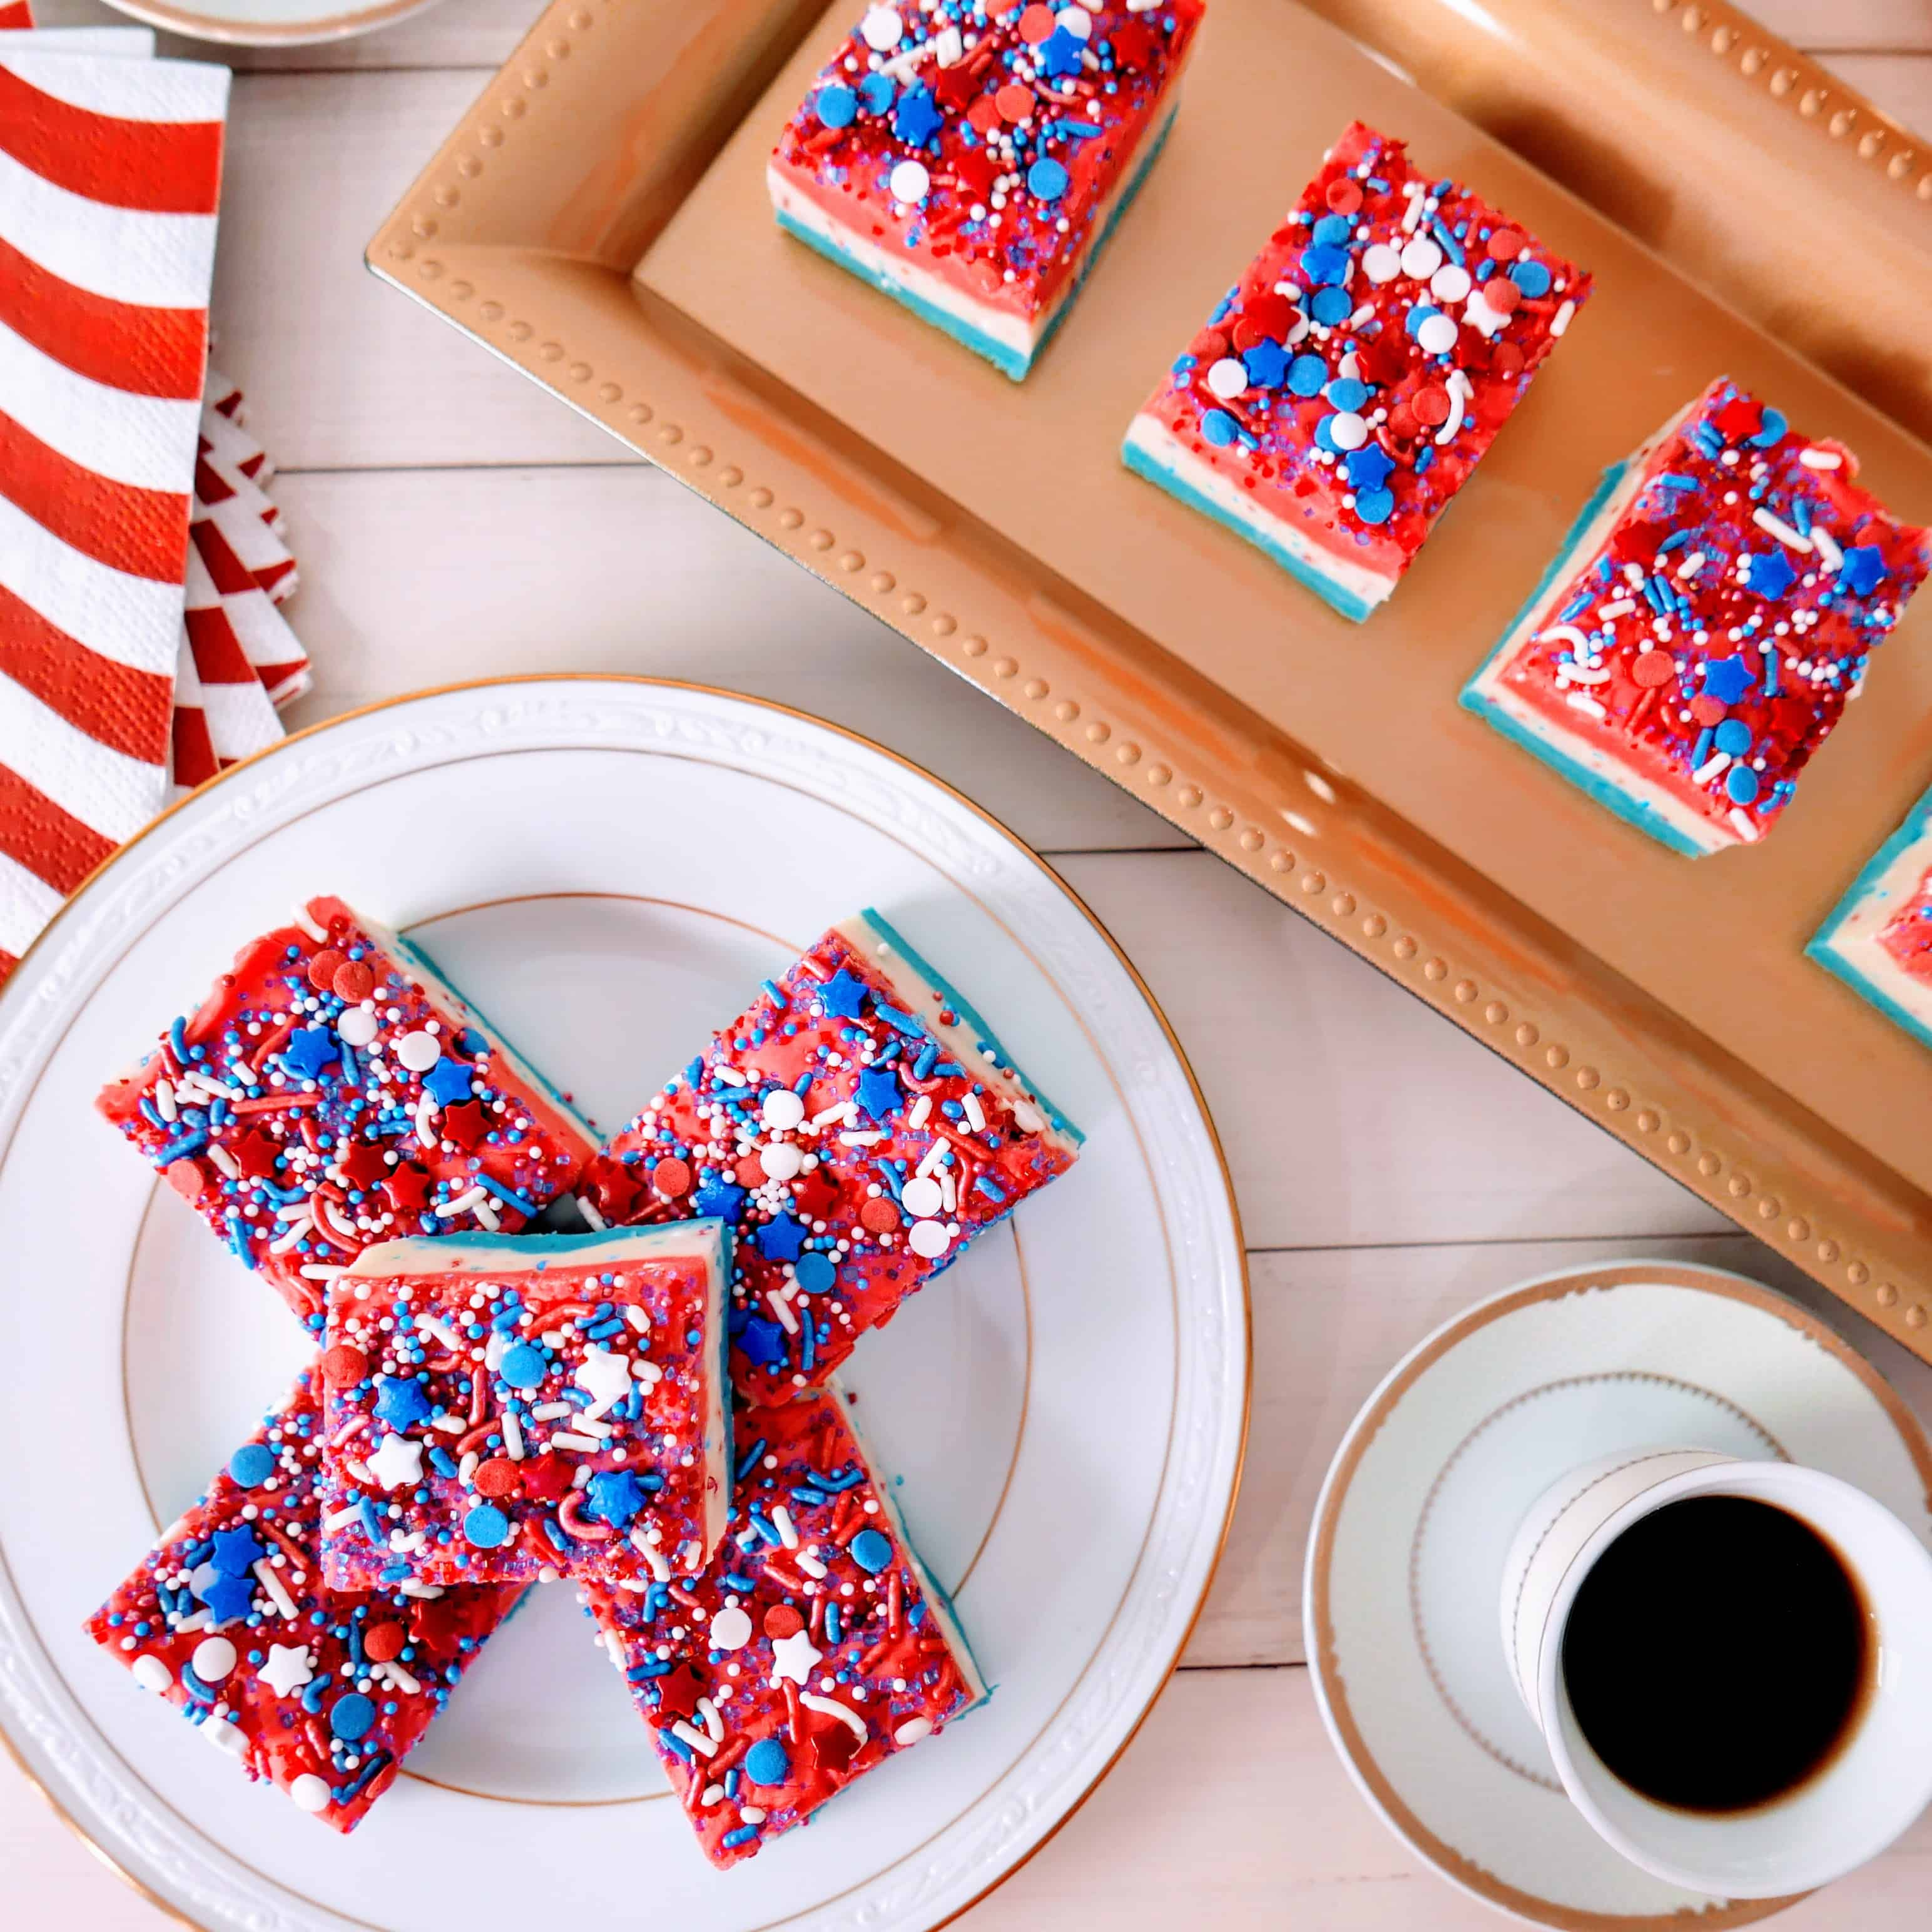 cut pieces of red, white, and blue fudge